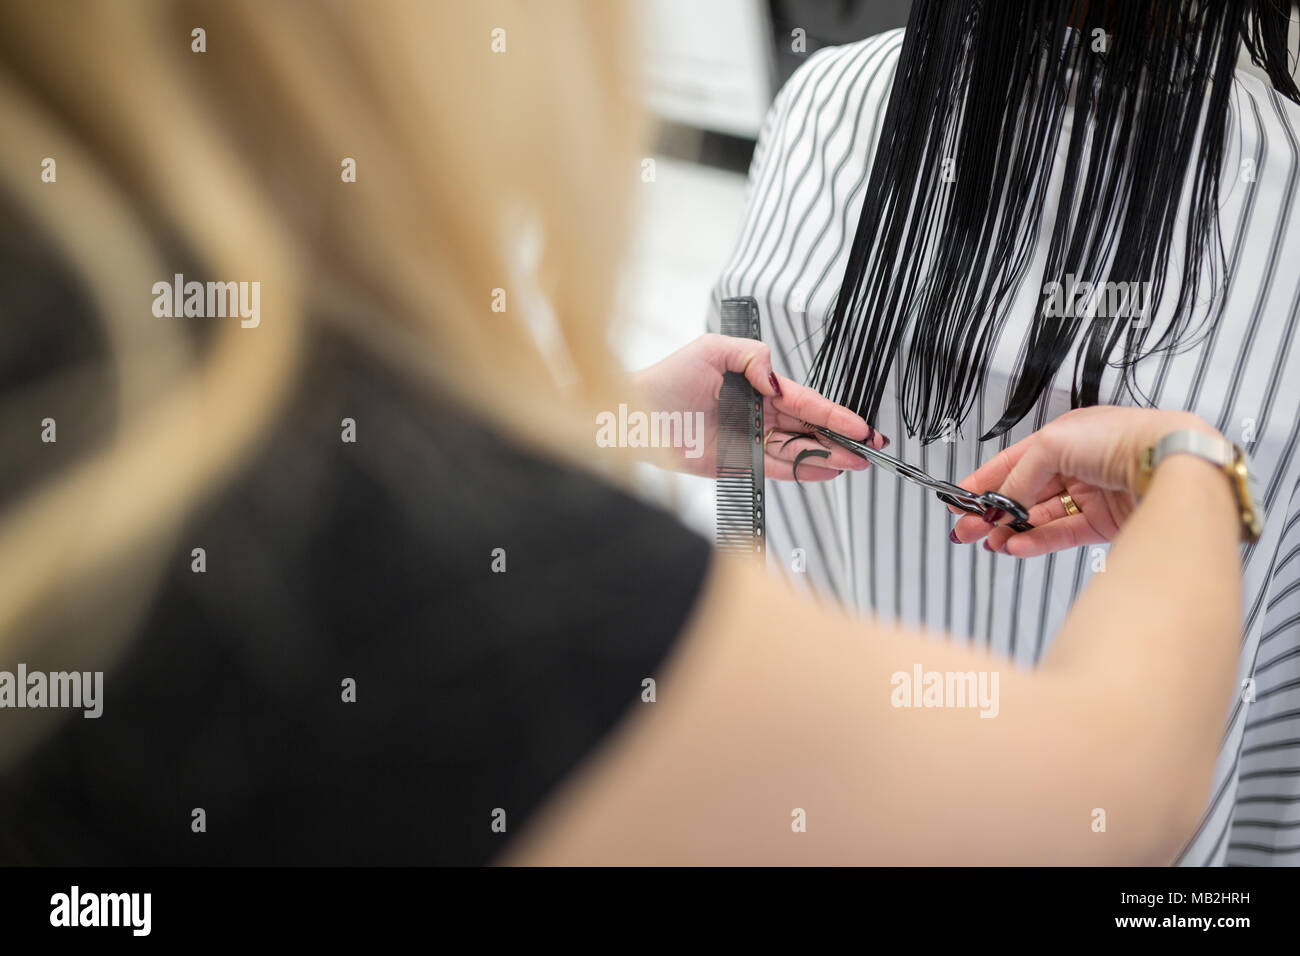 Back portrait of hairdresser cutting customer hair ends - Stock Image